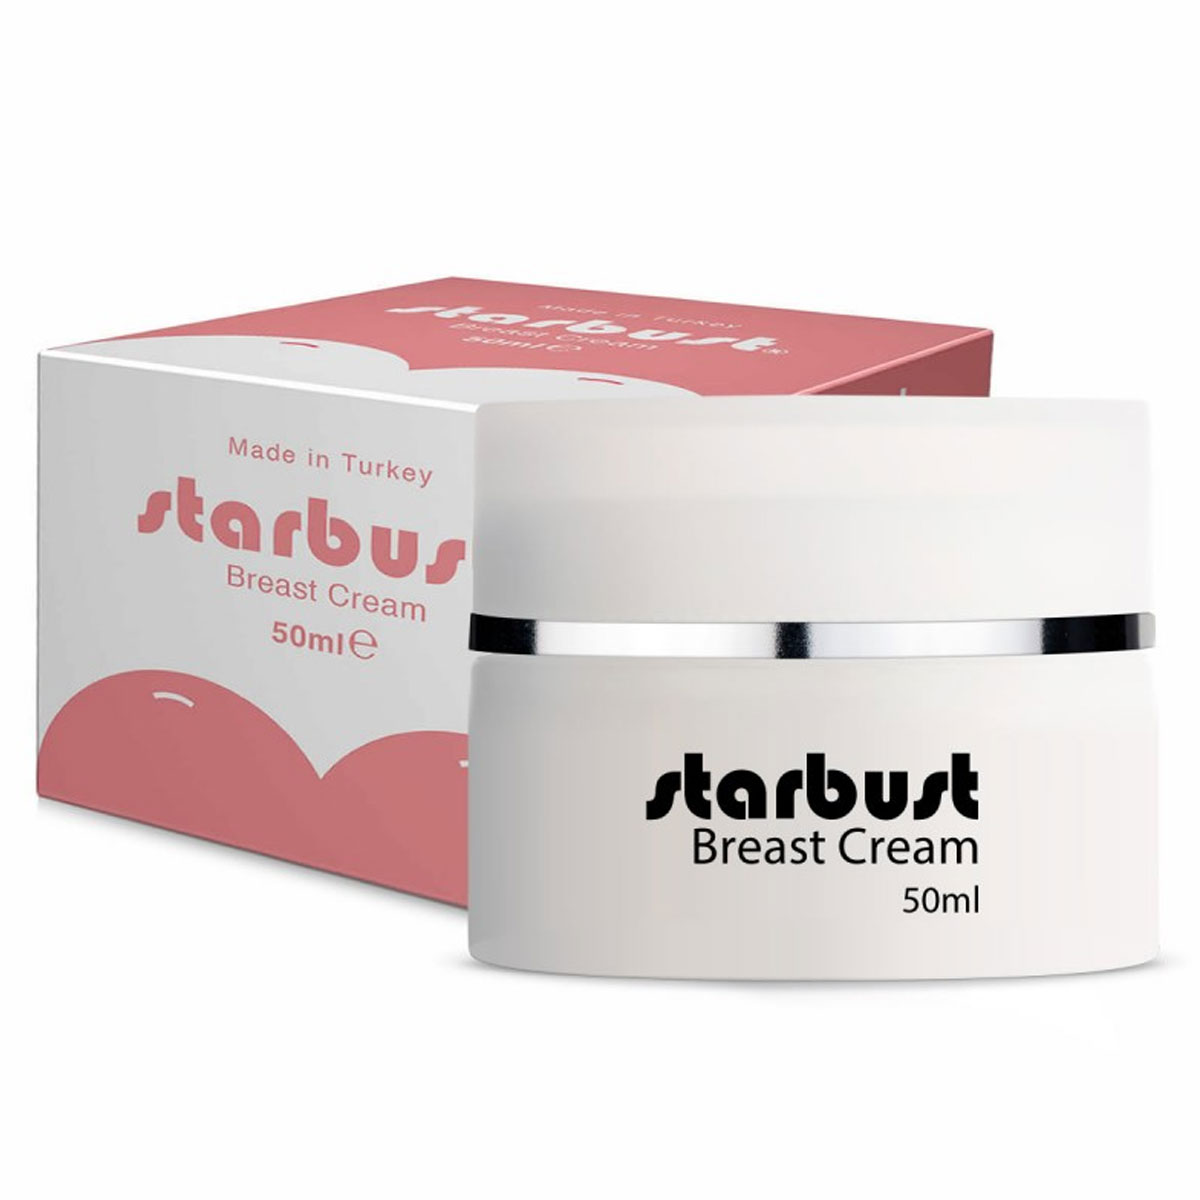 Star Bust Breast Cream C-1507